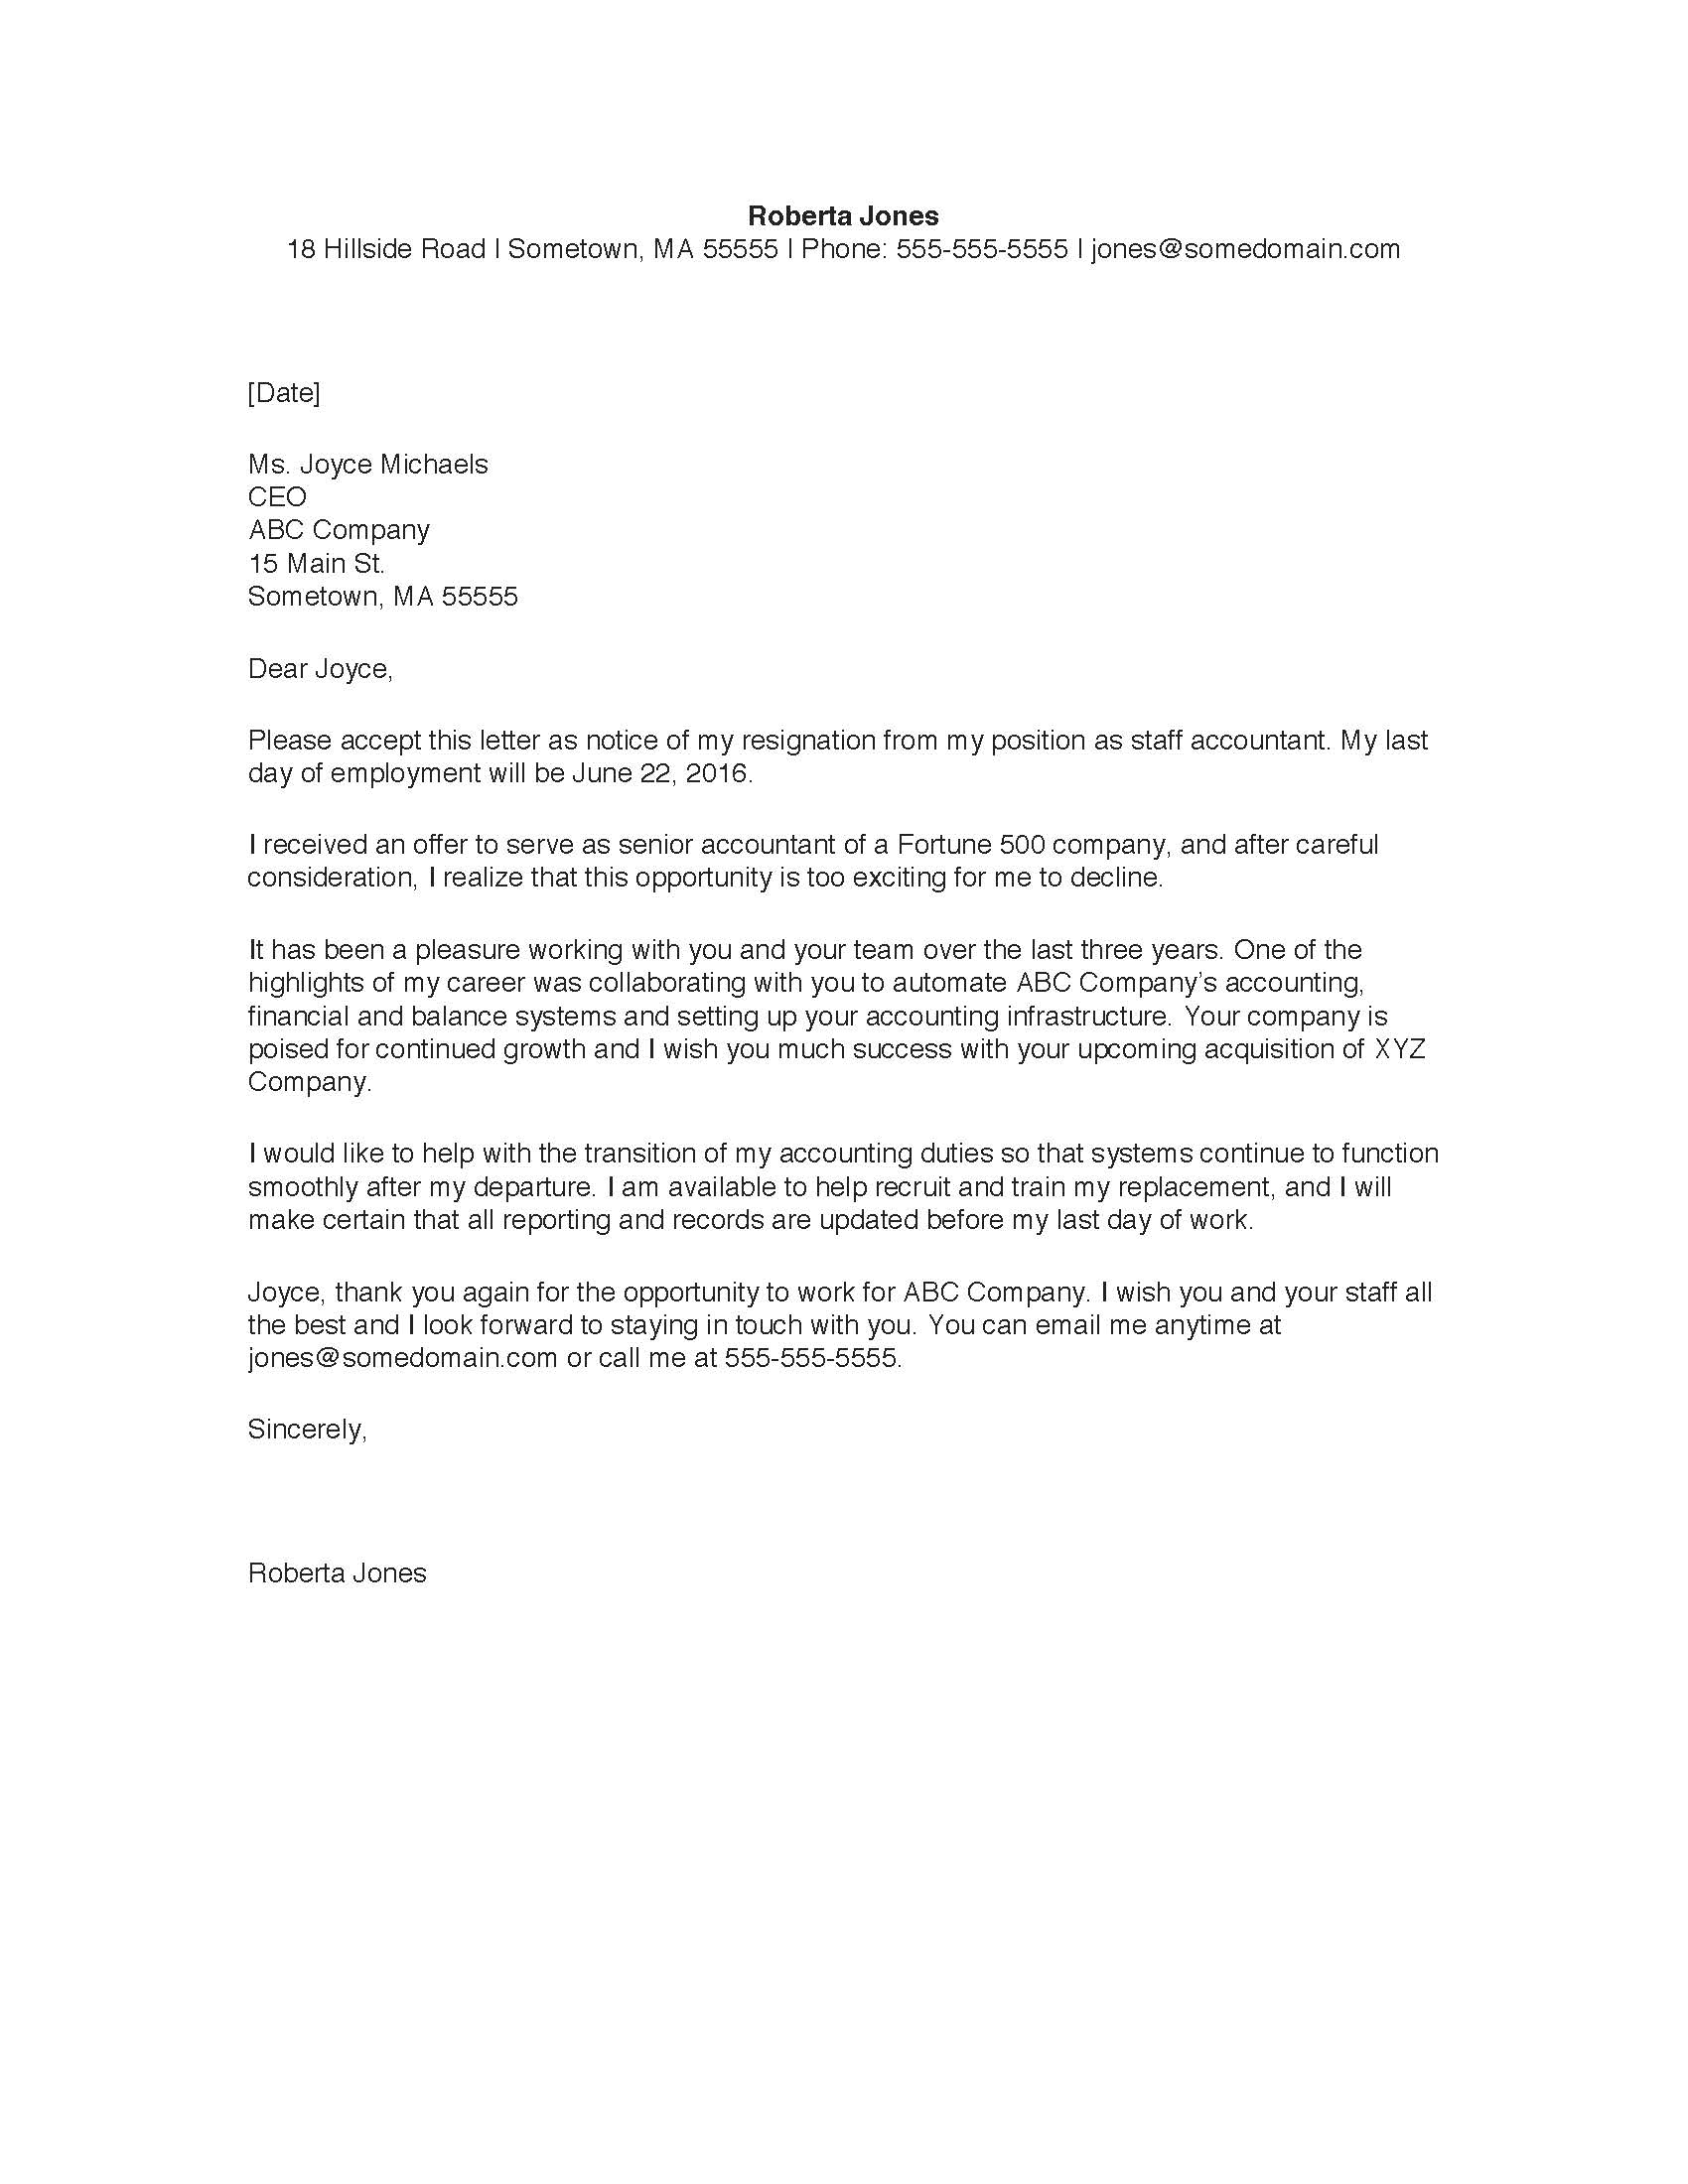 Resignation Letter Monstercom